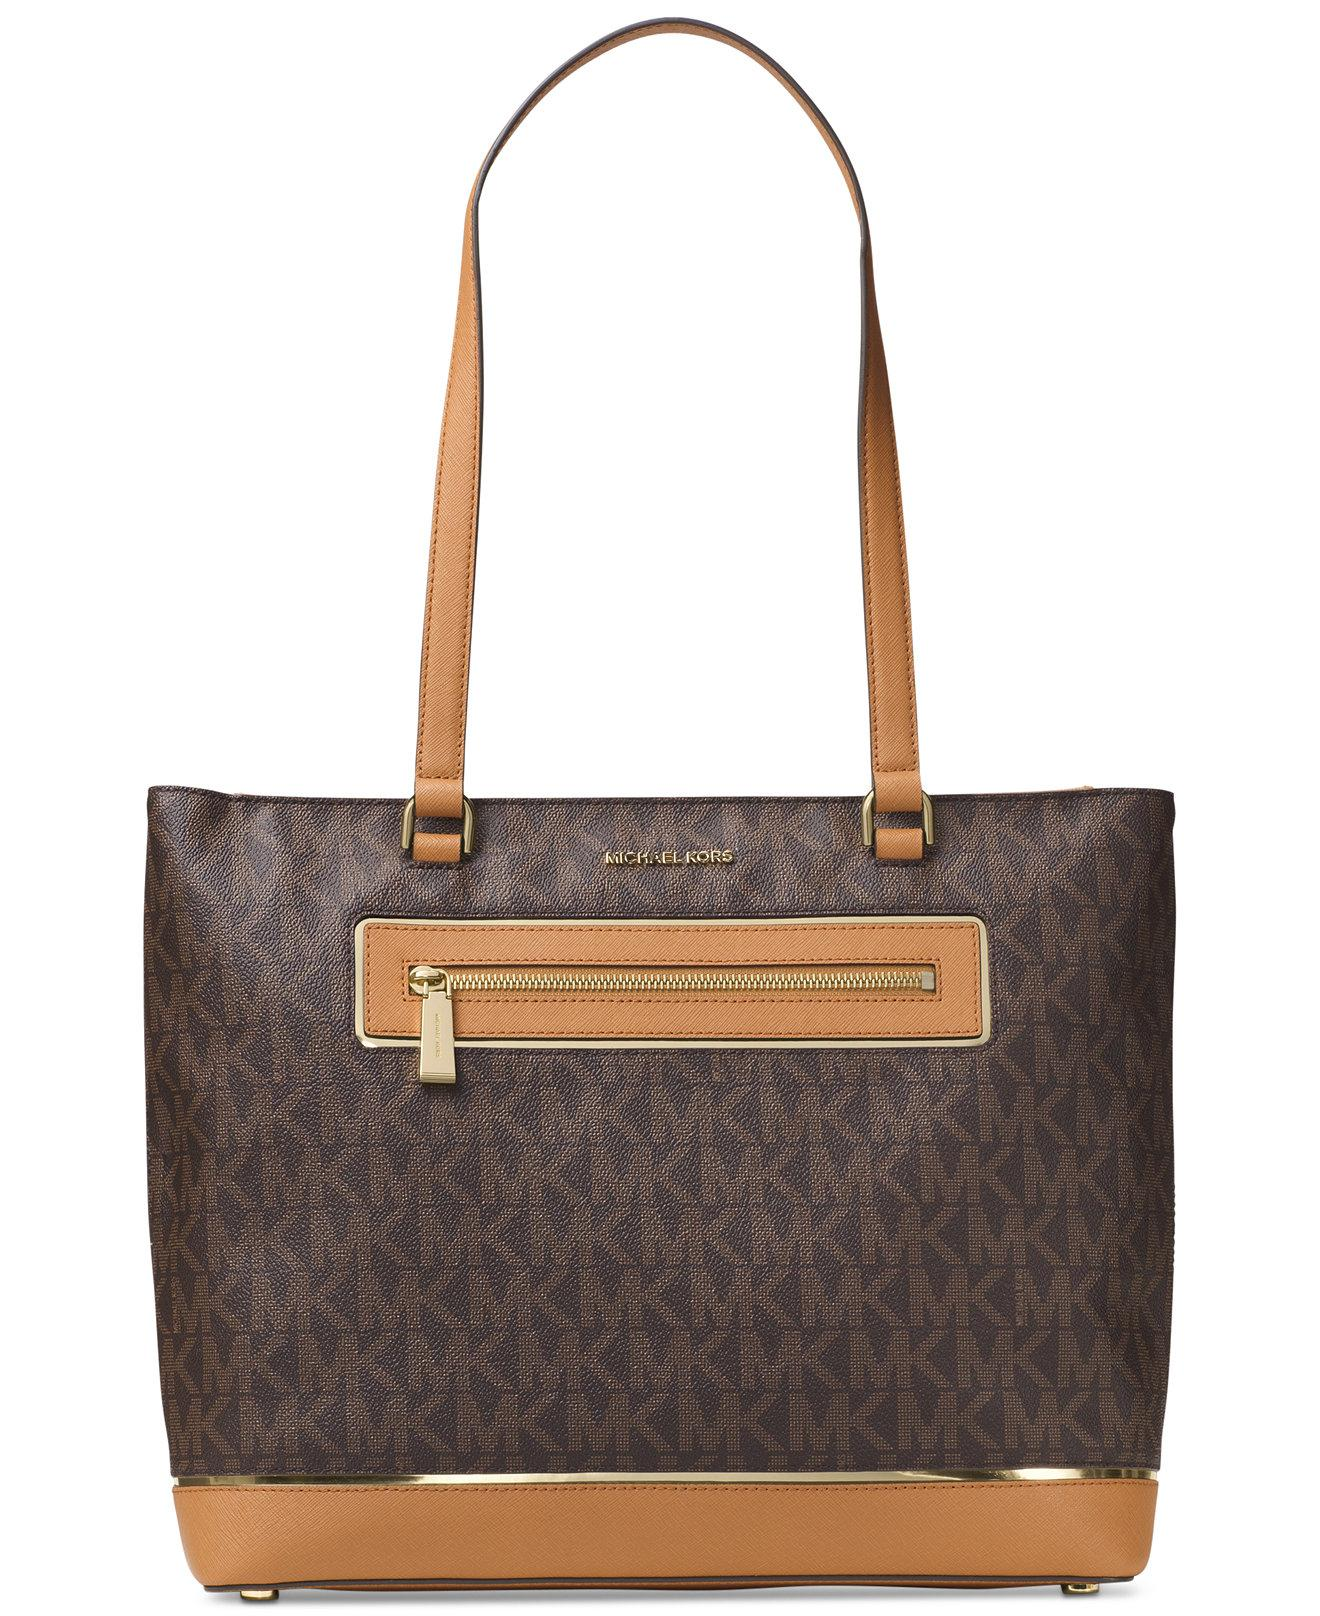 Michael Kors Frame Out Item North South Signature Shoulder Tote in Brown /  Gold